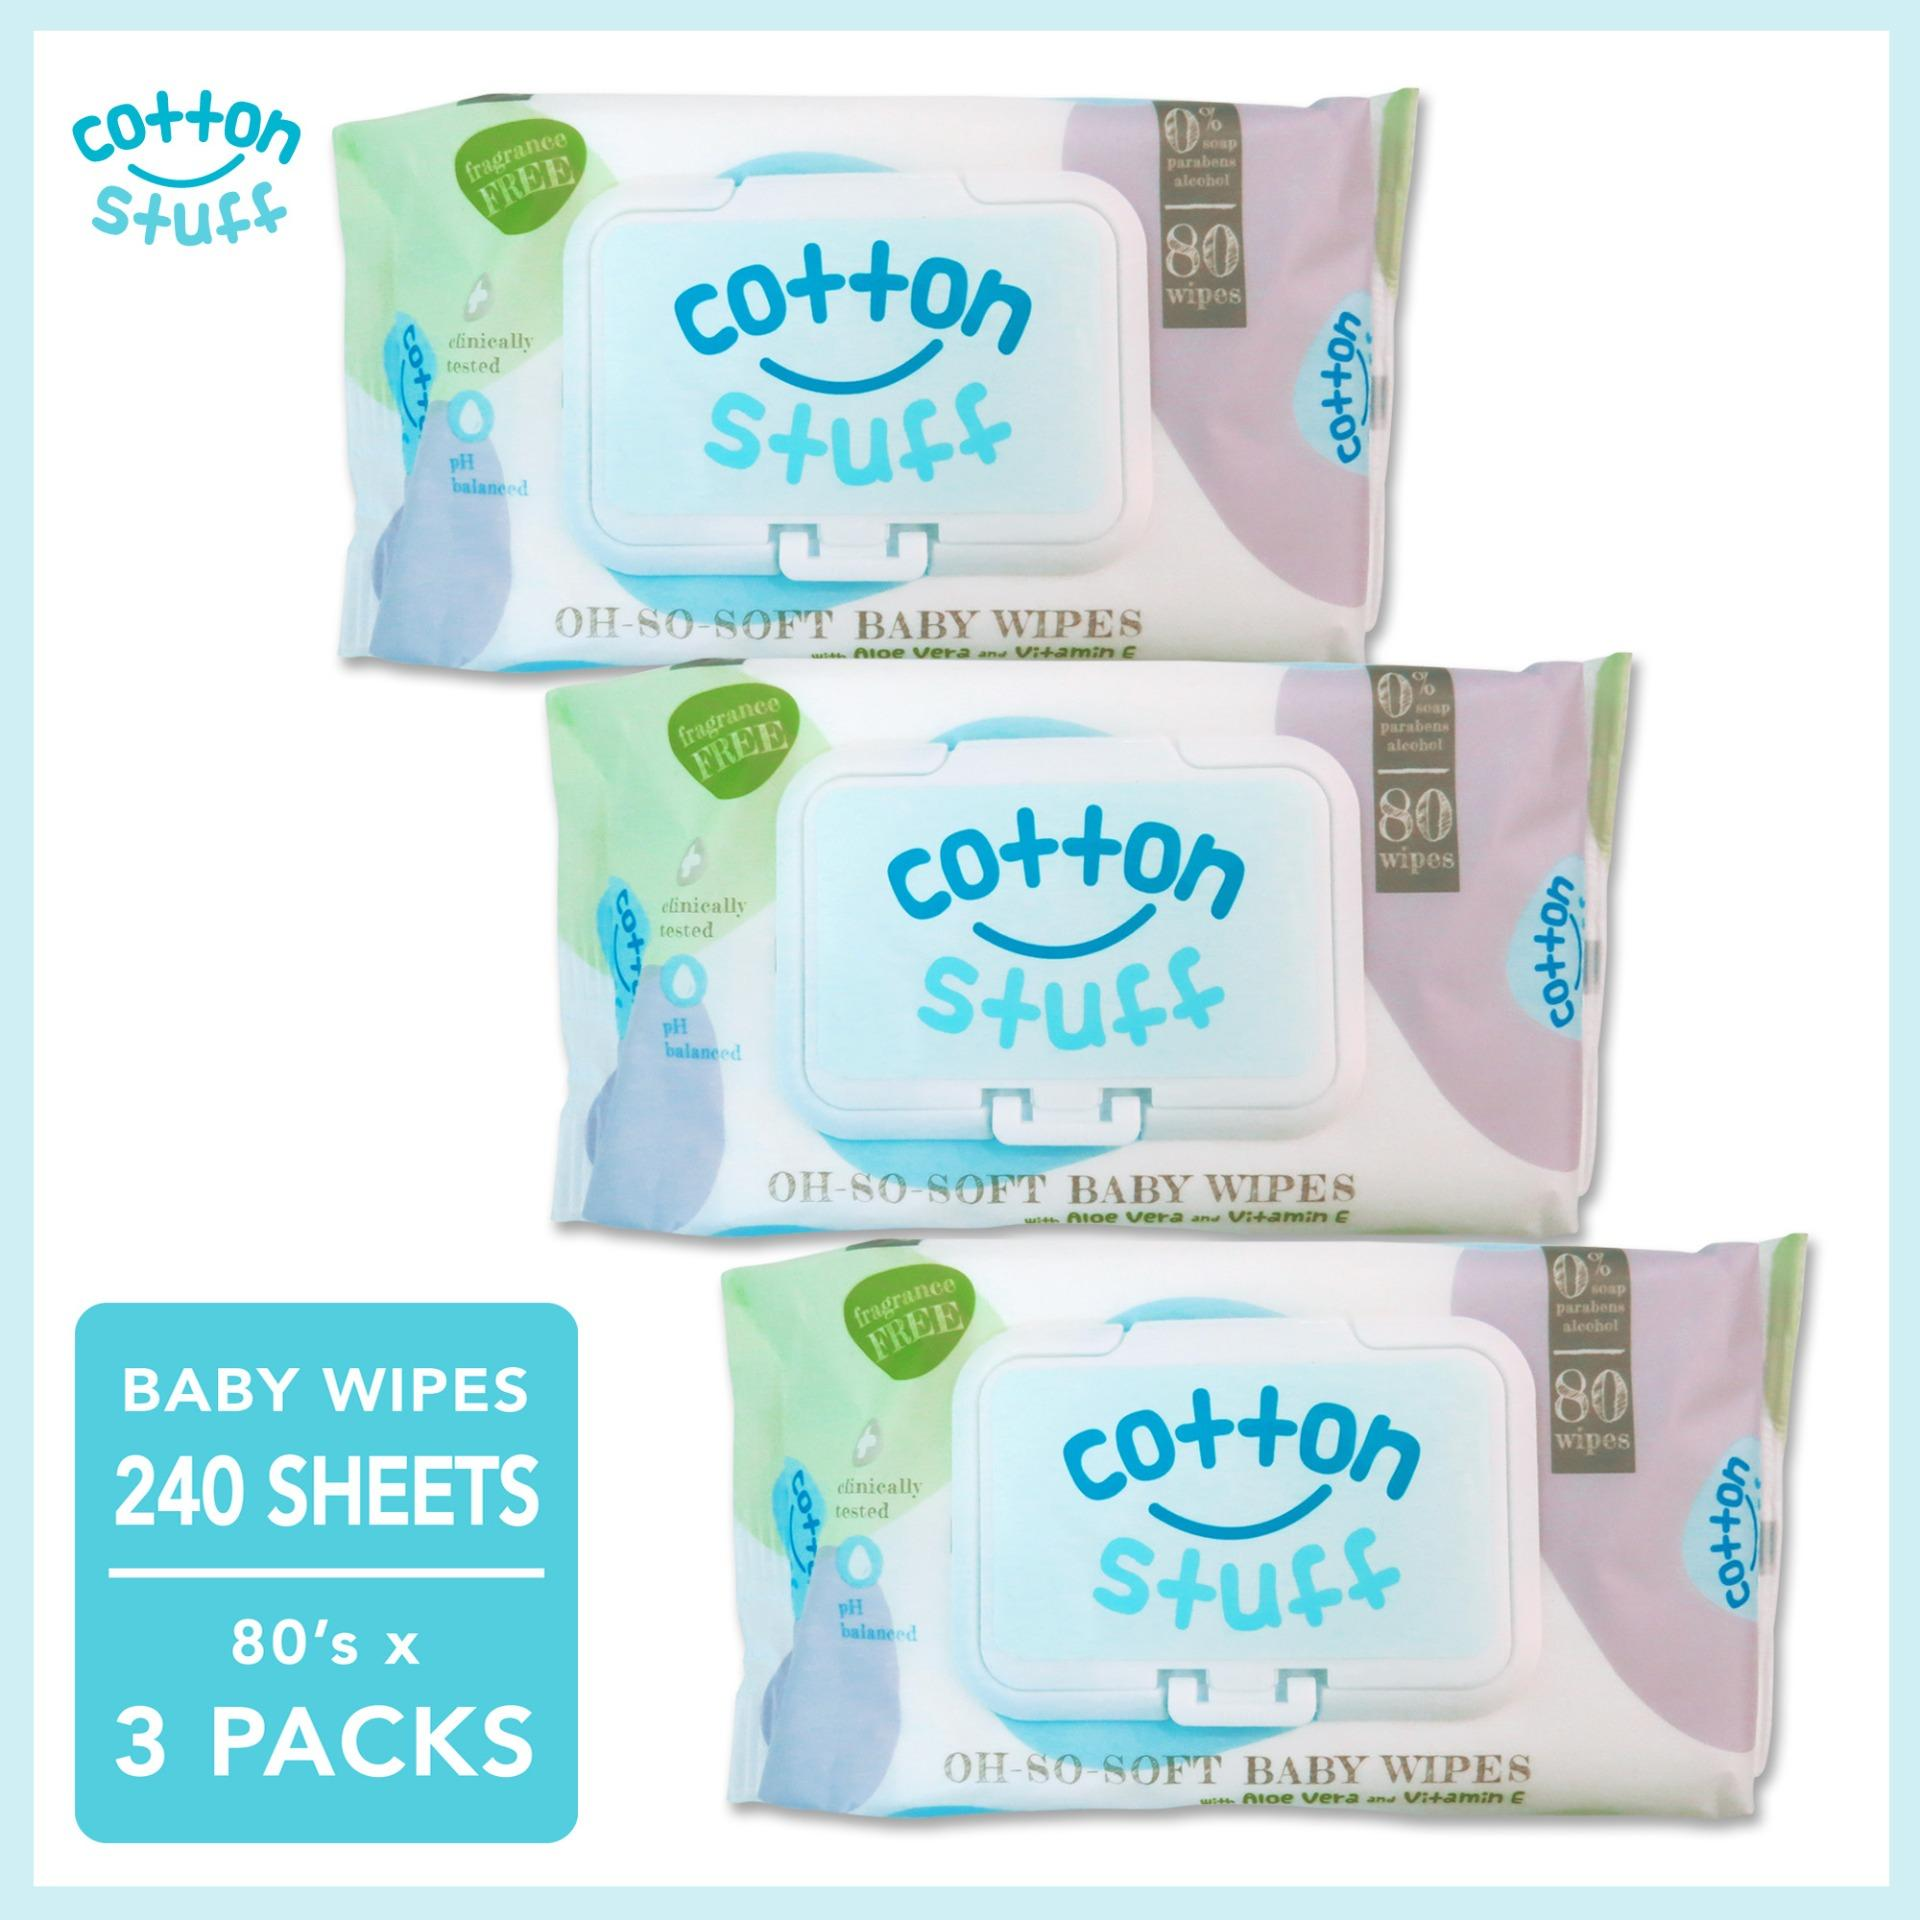 Cotton Stuff Baby Wipes (Fragrance Free) 80's x 3 packs